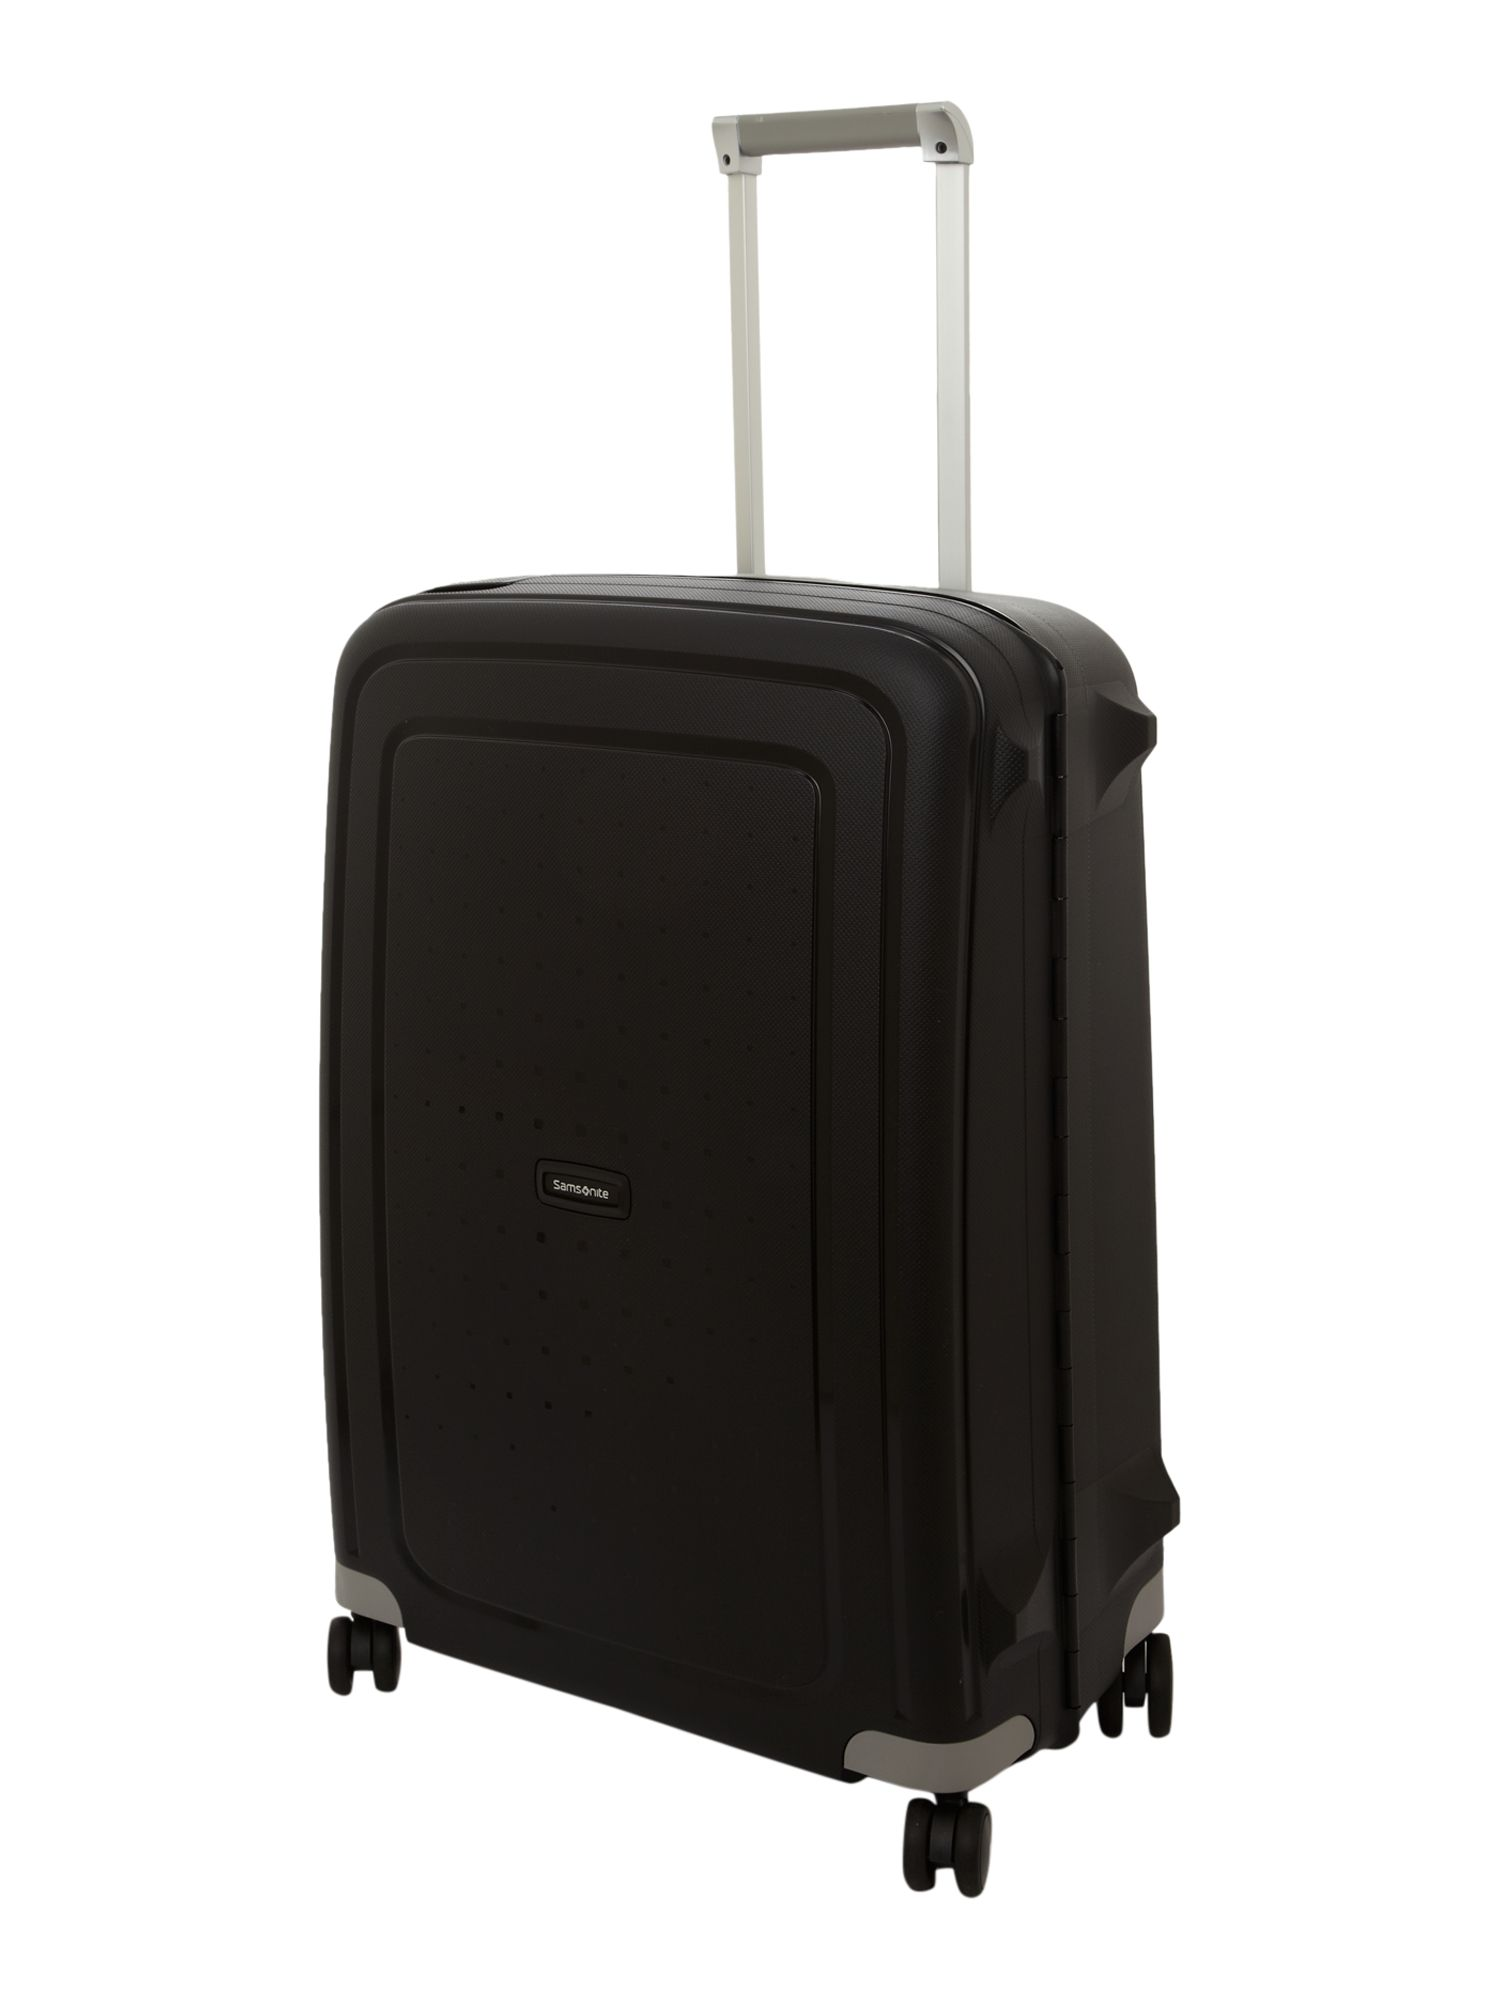 Samsonite S`Cure black 8 wheel 69cm medium suitcase Black